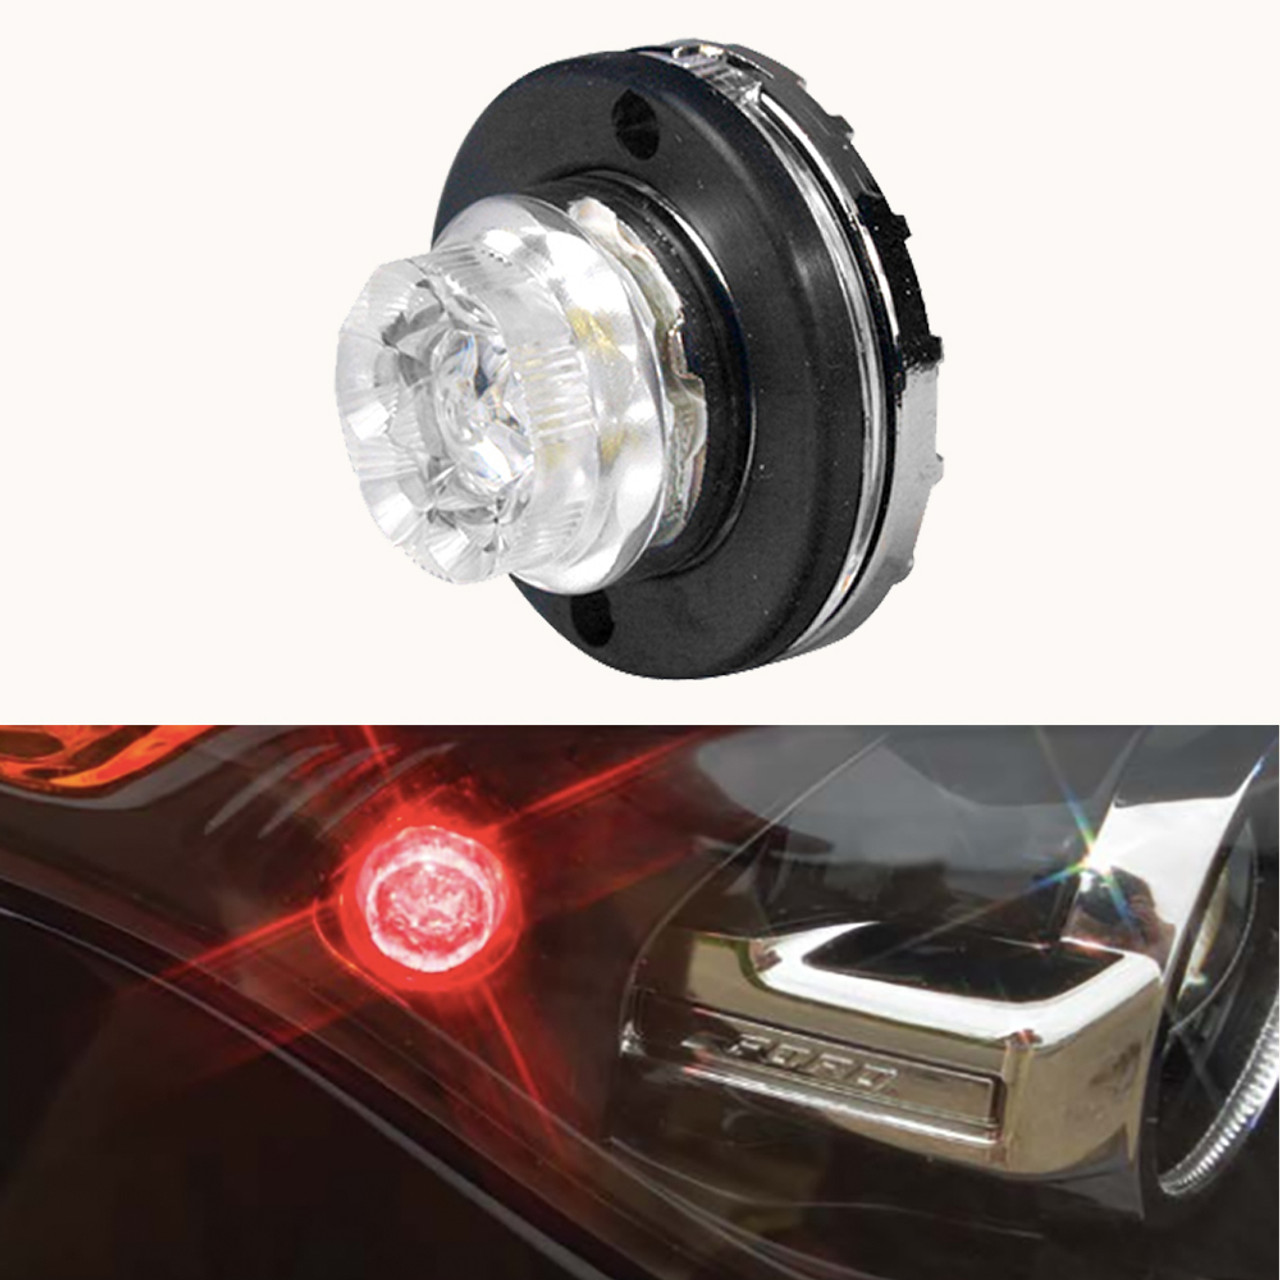 SoundOff Signal Undercover Hide Away Corner LED Inserts, for Tail-Lights, Headlights, or optional surface flush mount, screw-in, universal, 10 or 25 ft cable, ELUC3H0